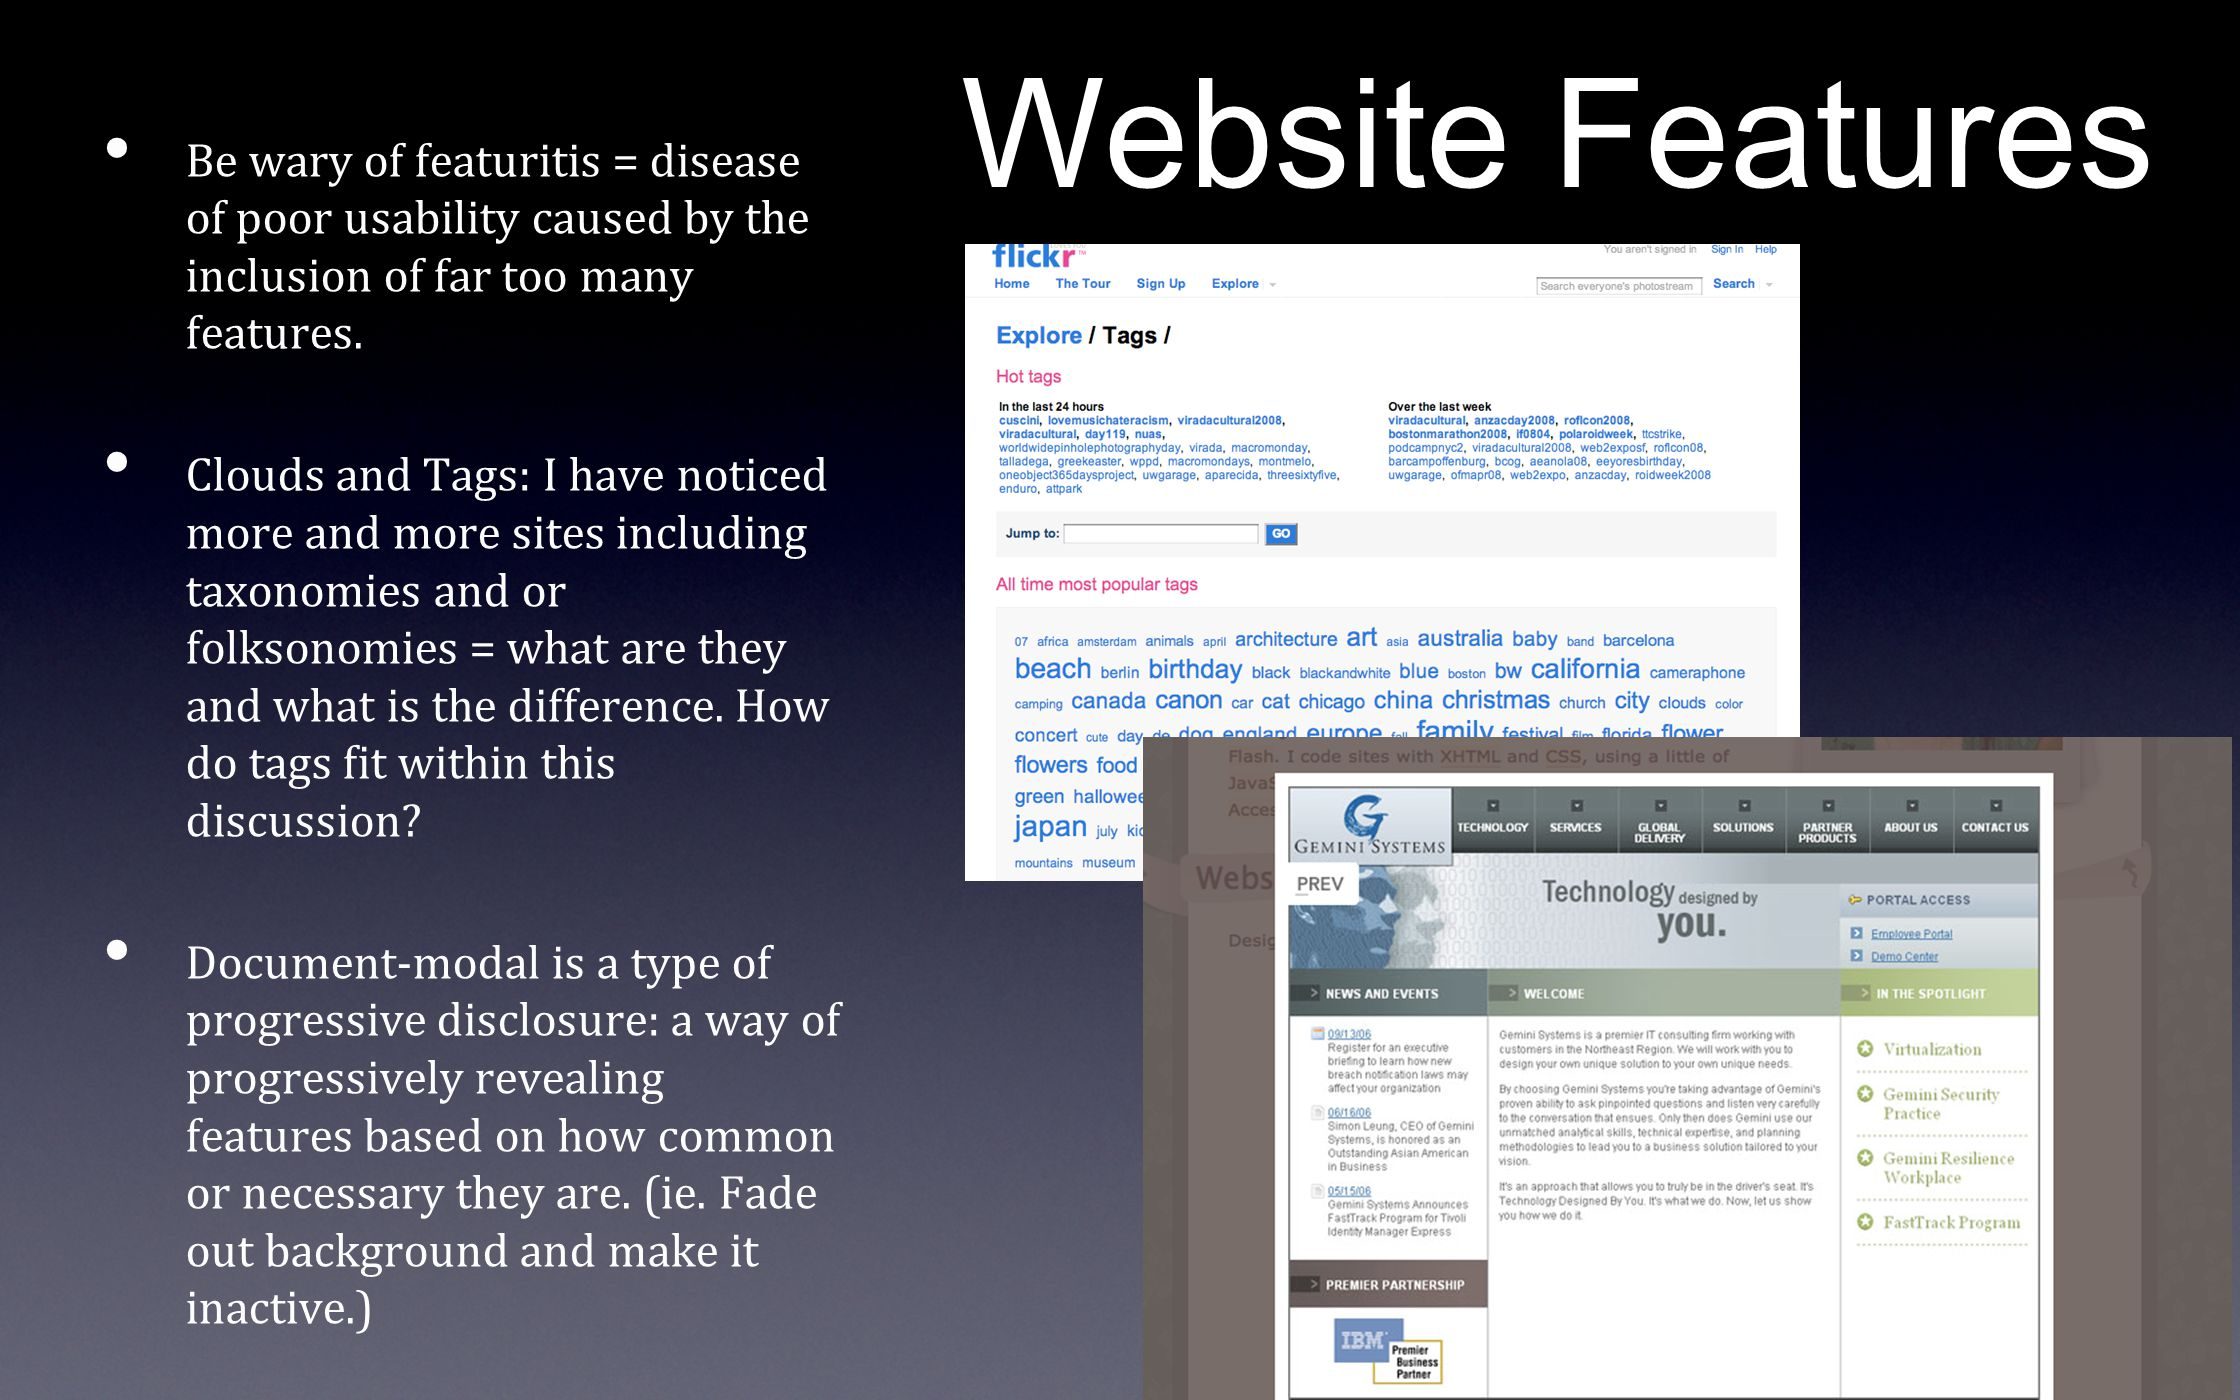 Website Features Be wary of featuritis = disease of poor usability caused by the inclusion of far too many features.